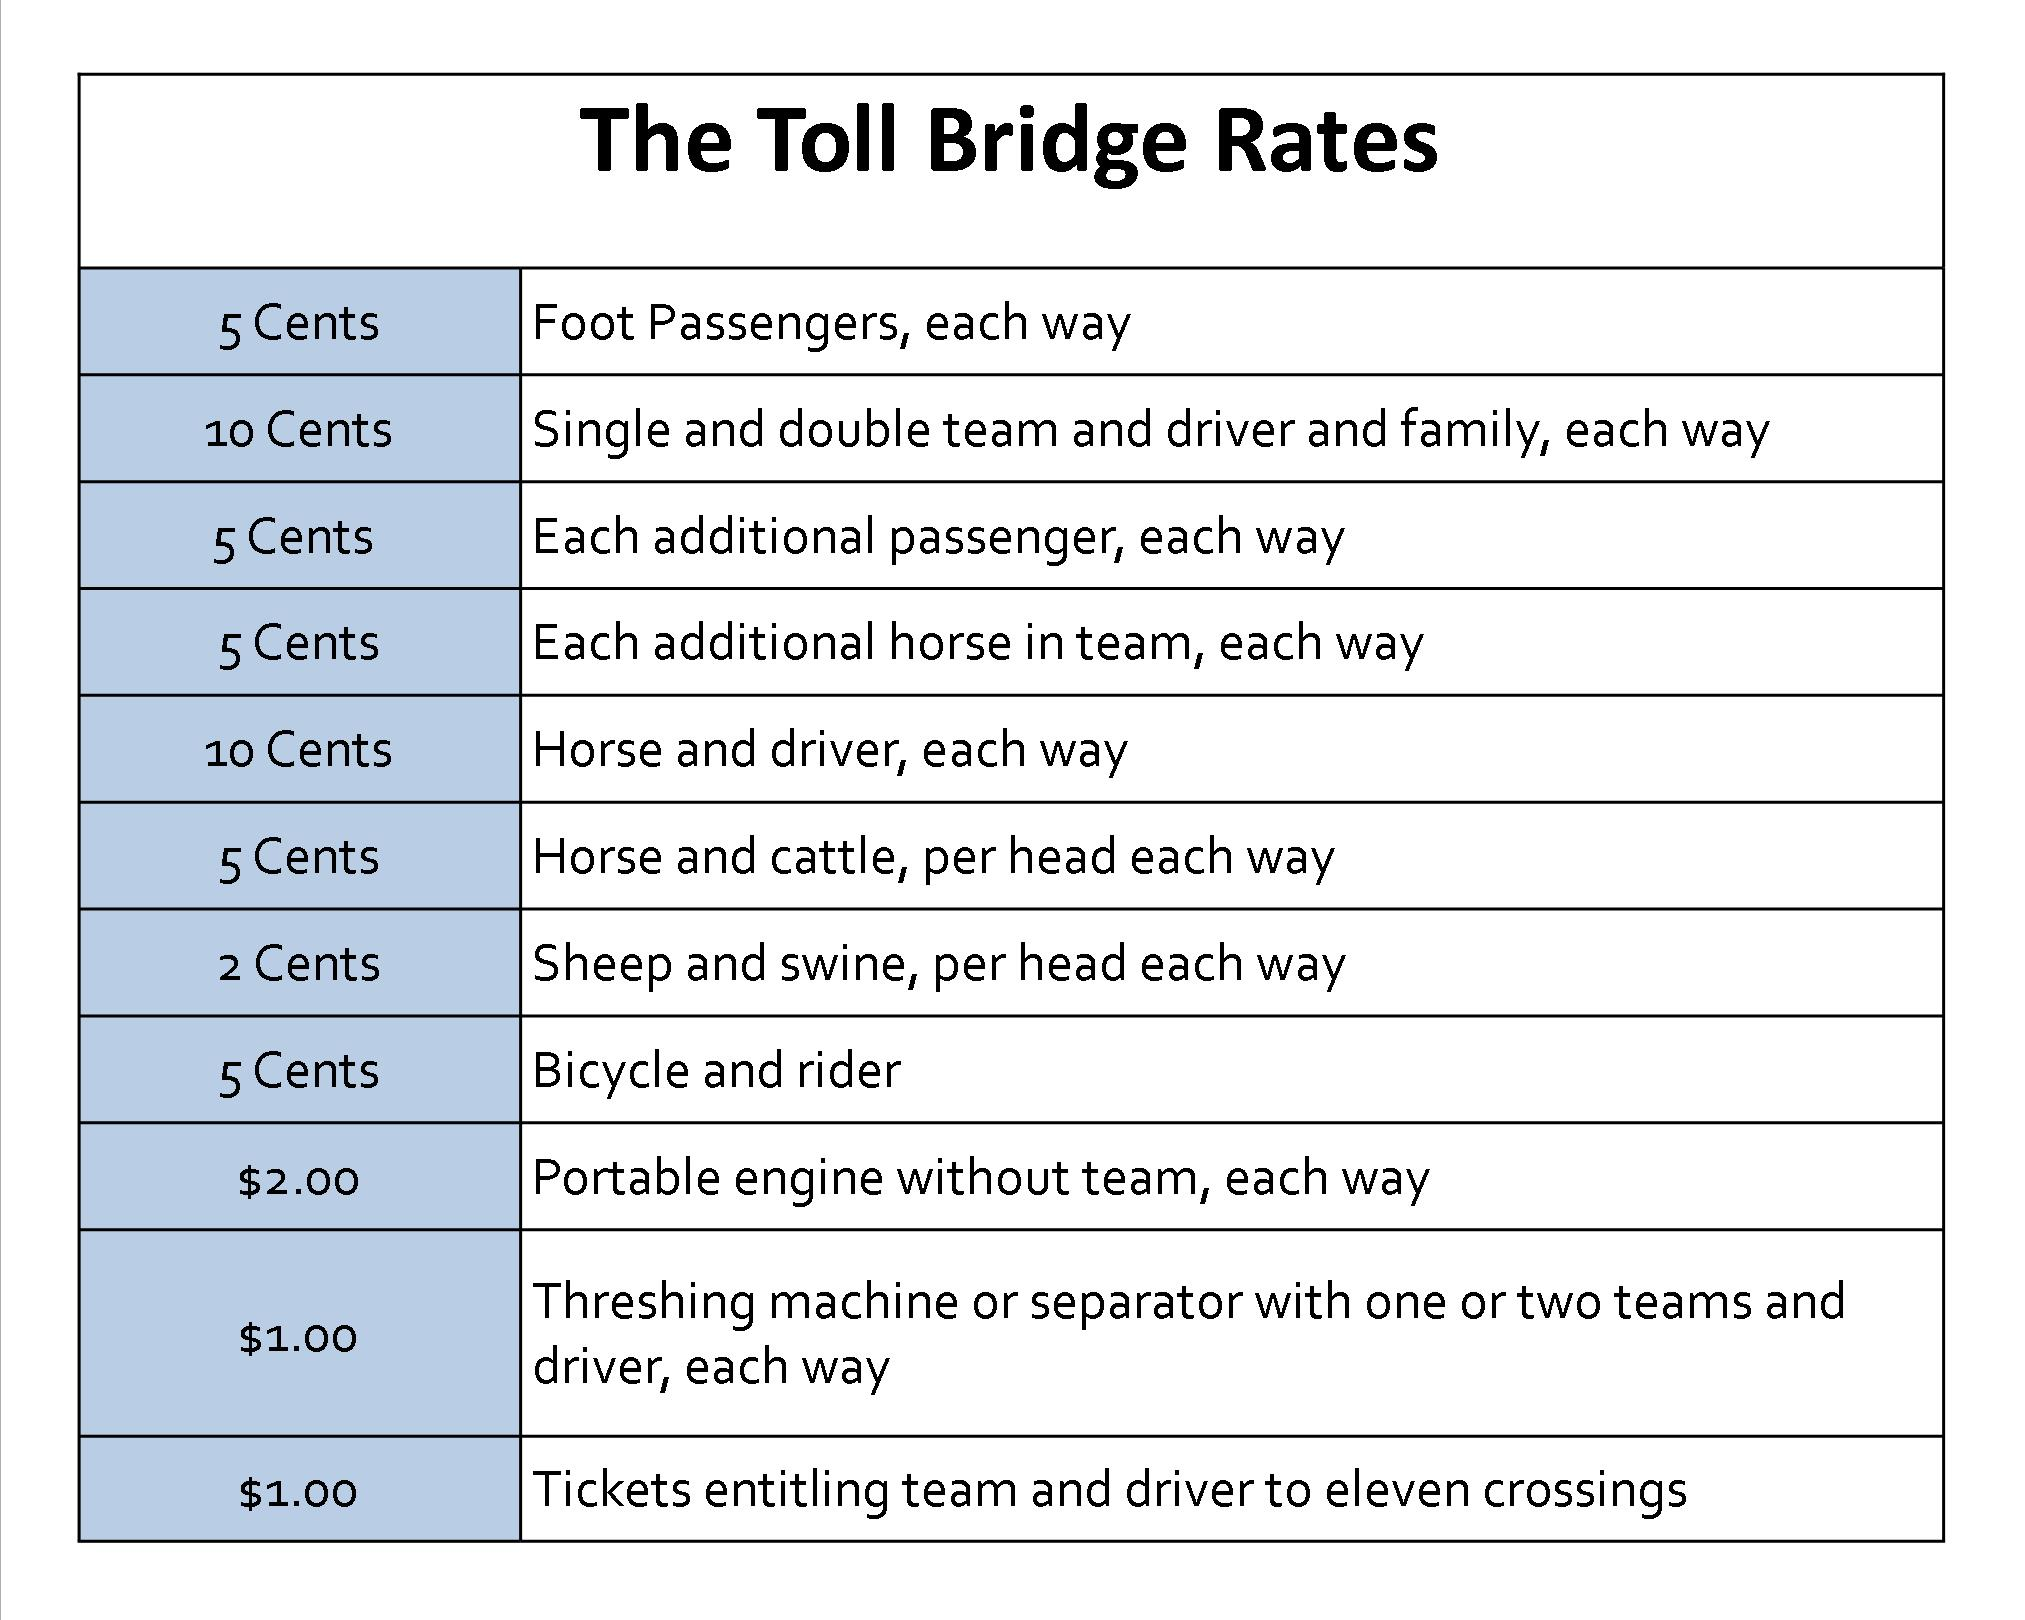 The Toll Bridge Rates